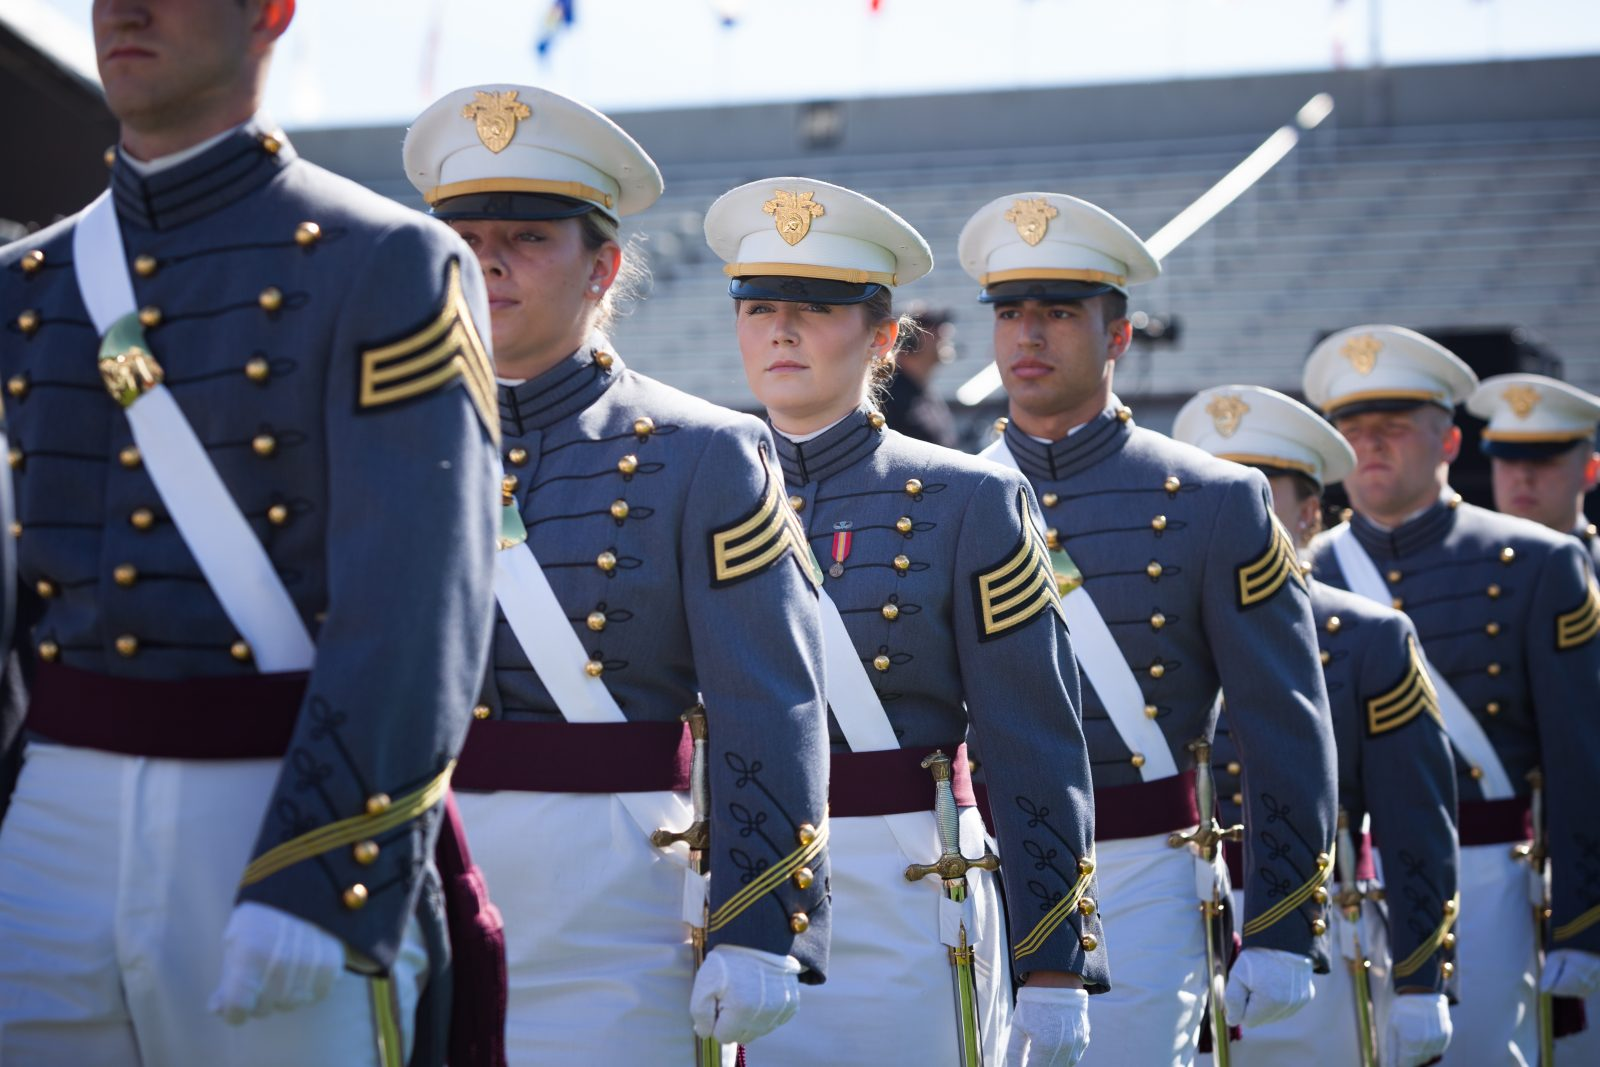 U.S. Military Academy cadets marching